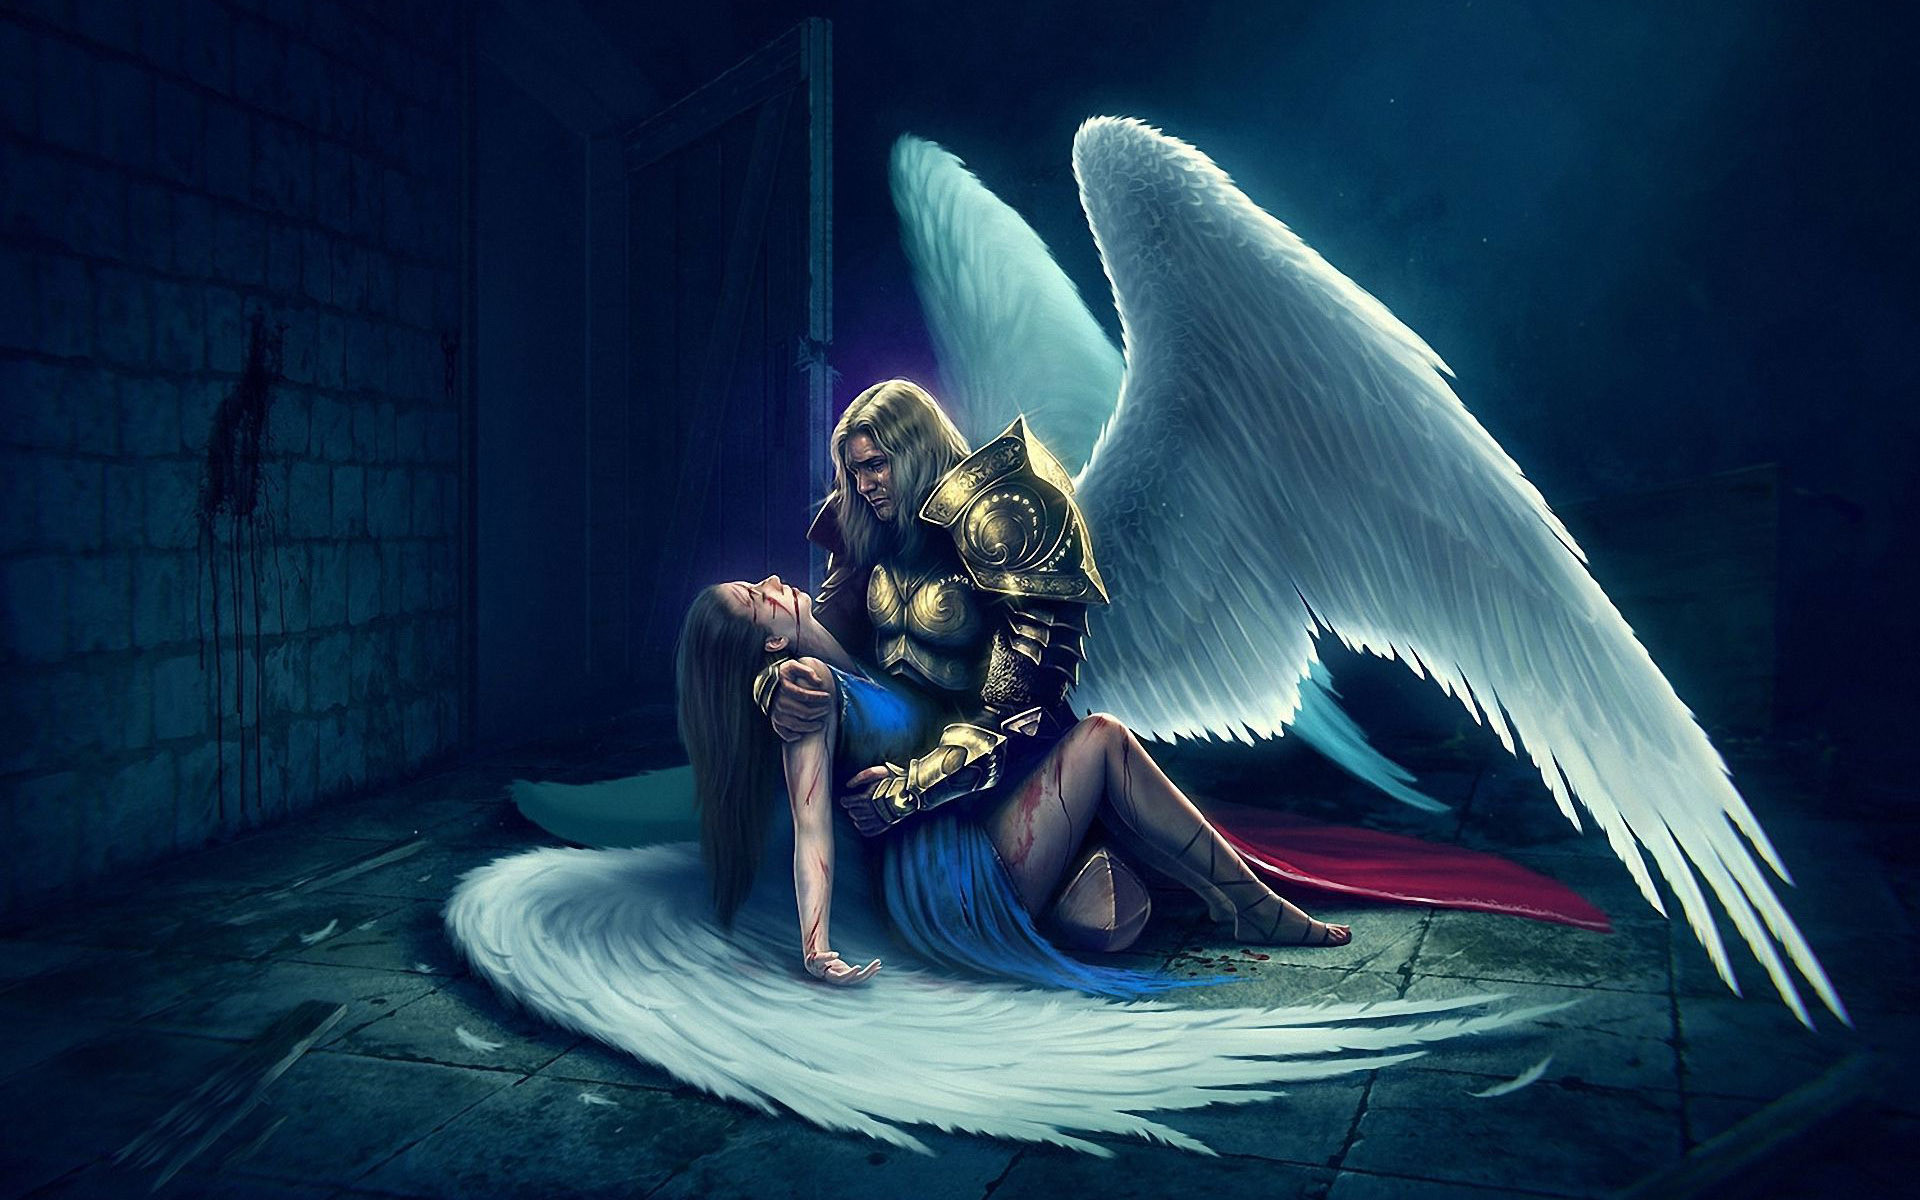 1920x1200 Dying angel wallpaper #18413